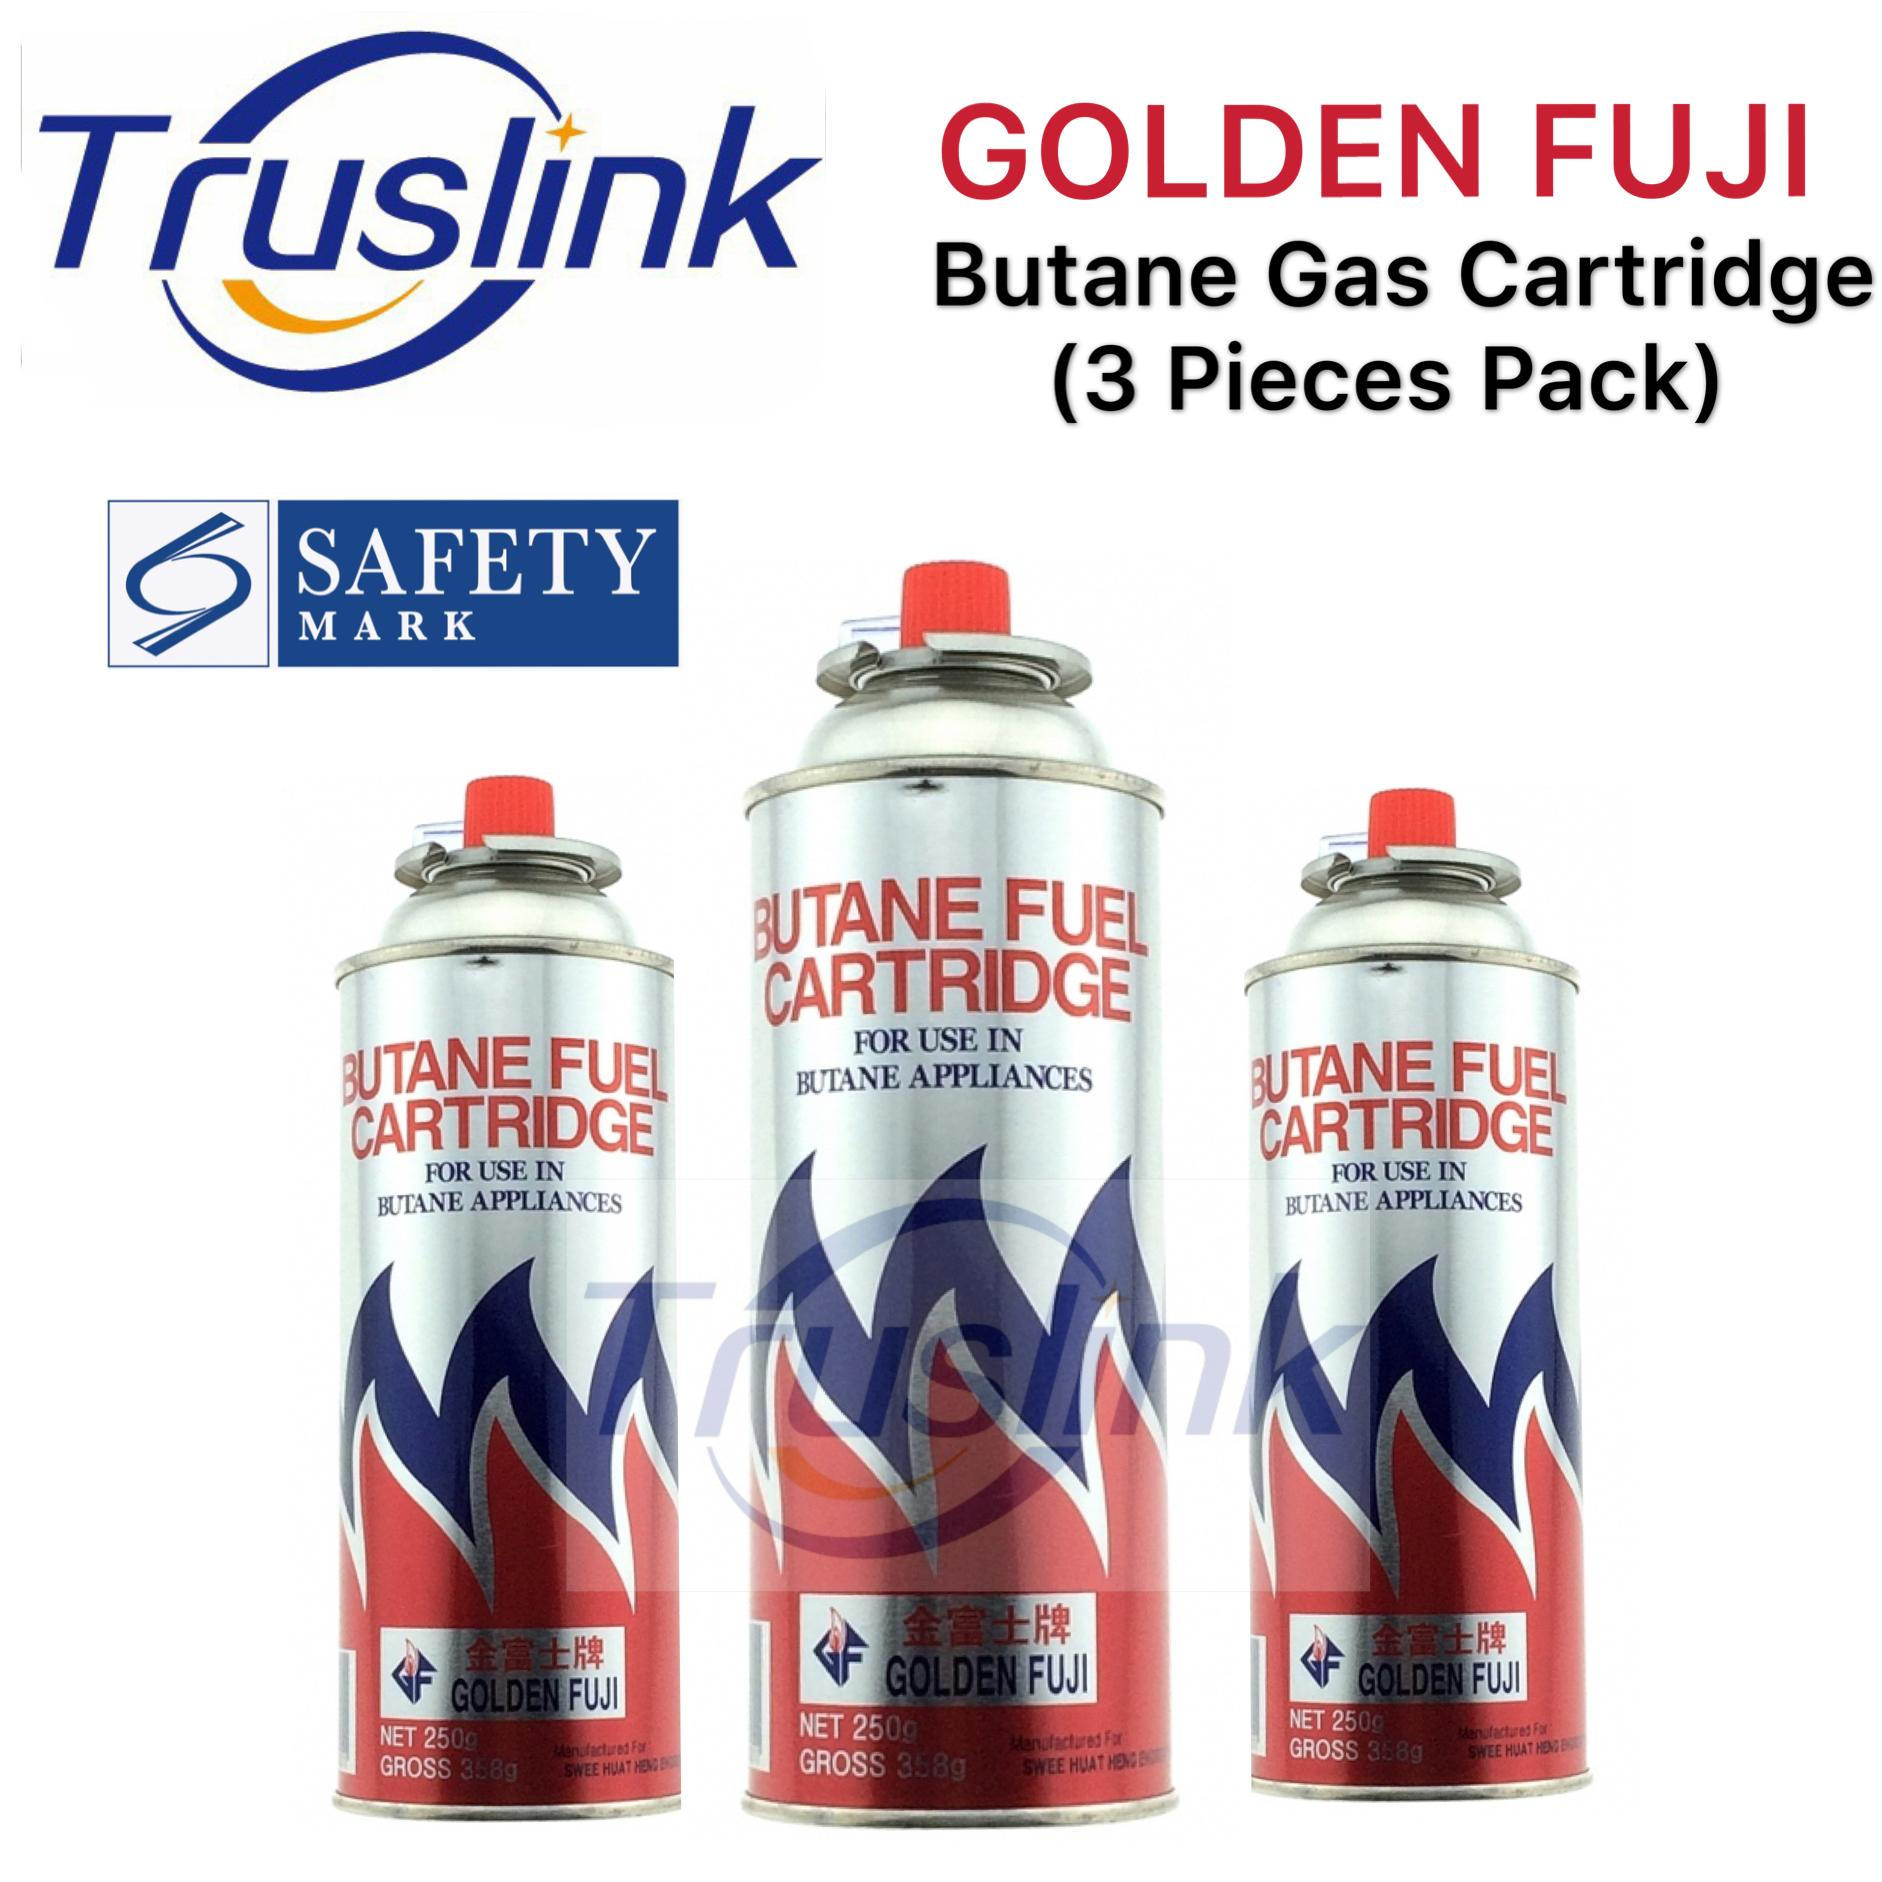 [SG Seller]Truslink Golden Fuji Gas Cartridge 3 IN 1 Pack Singapore Product Safety Mark Approved Butane Fuel Cartridge Butane Gas 3 X 250g/250ml